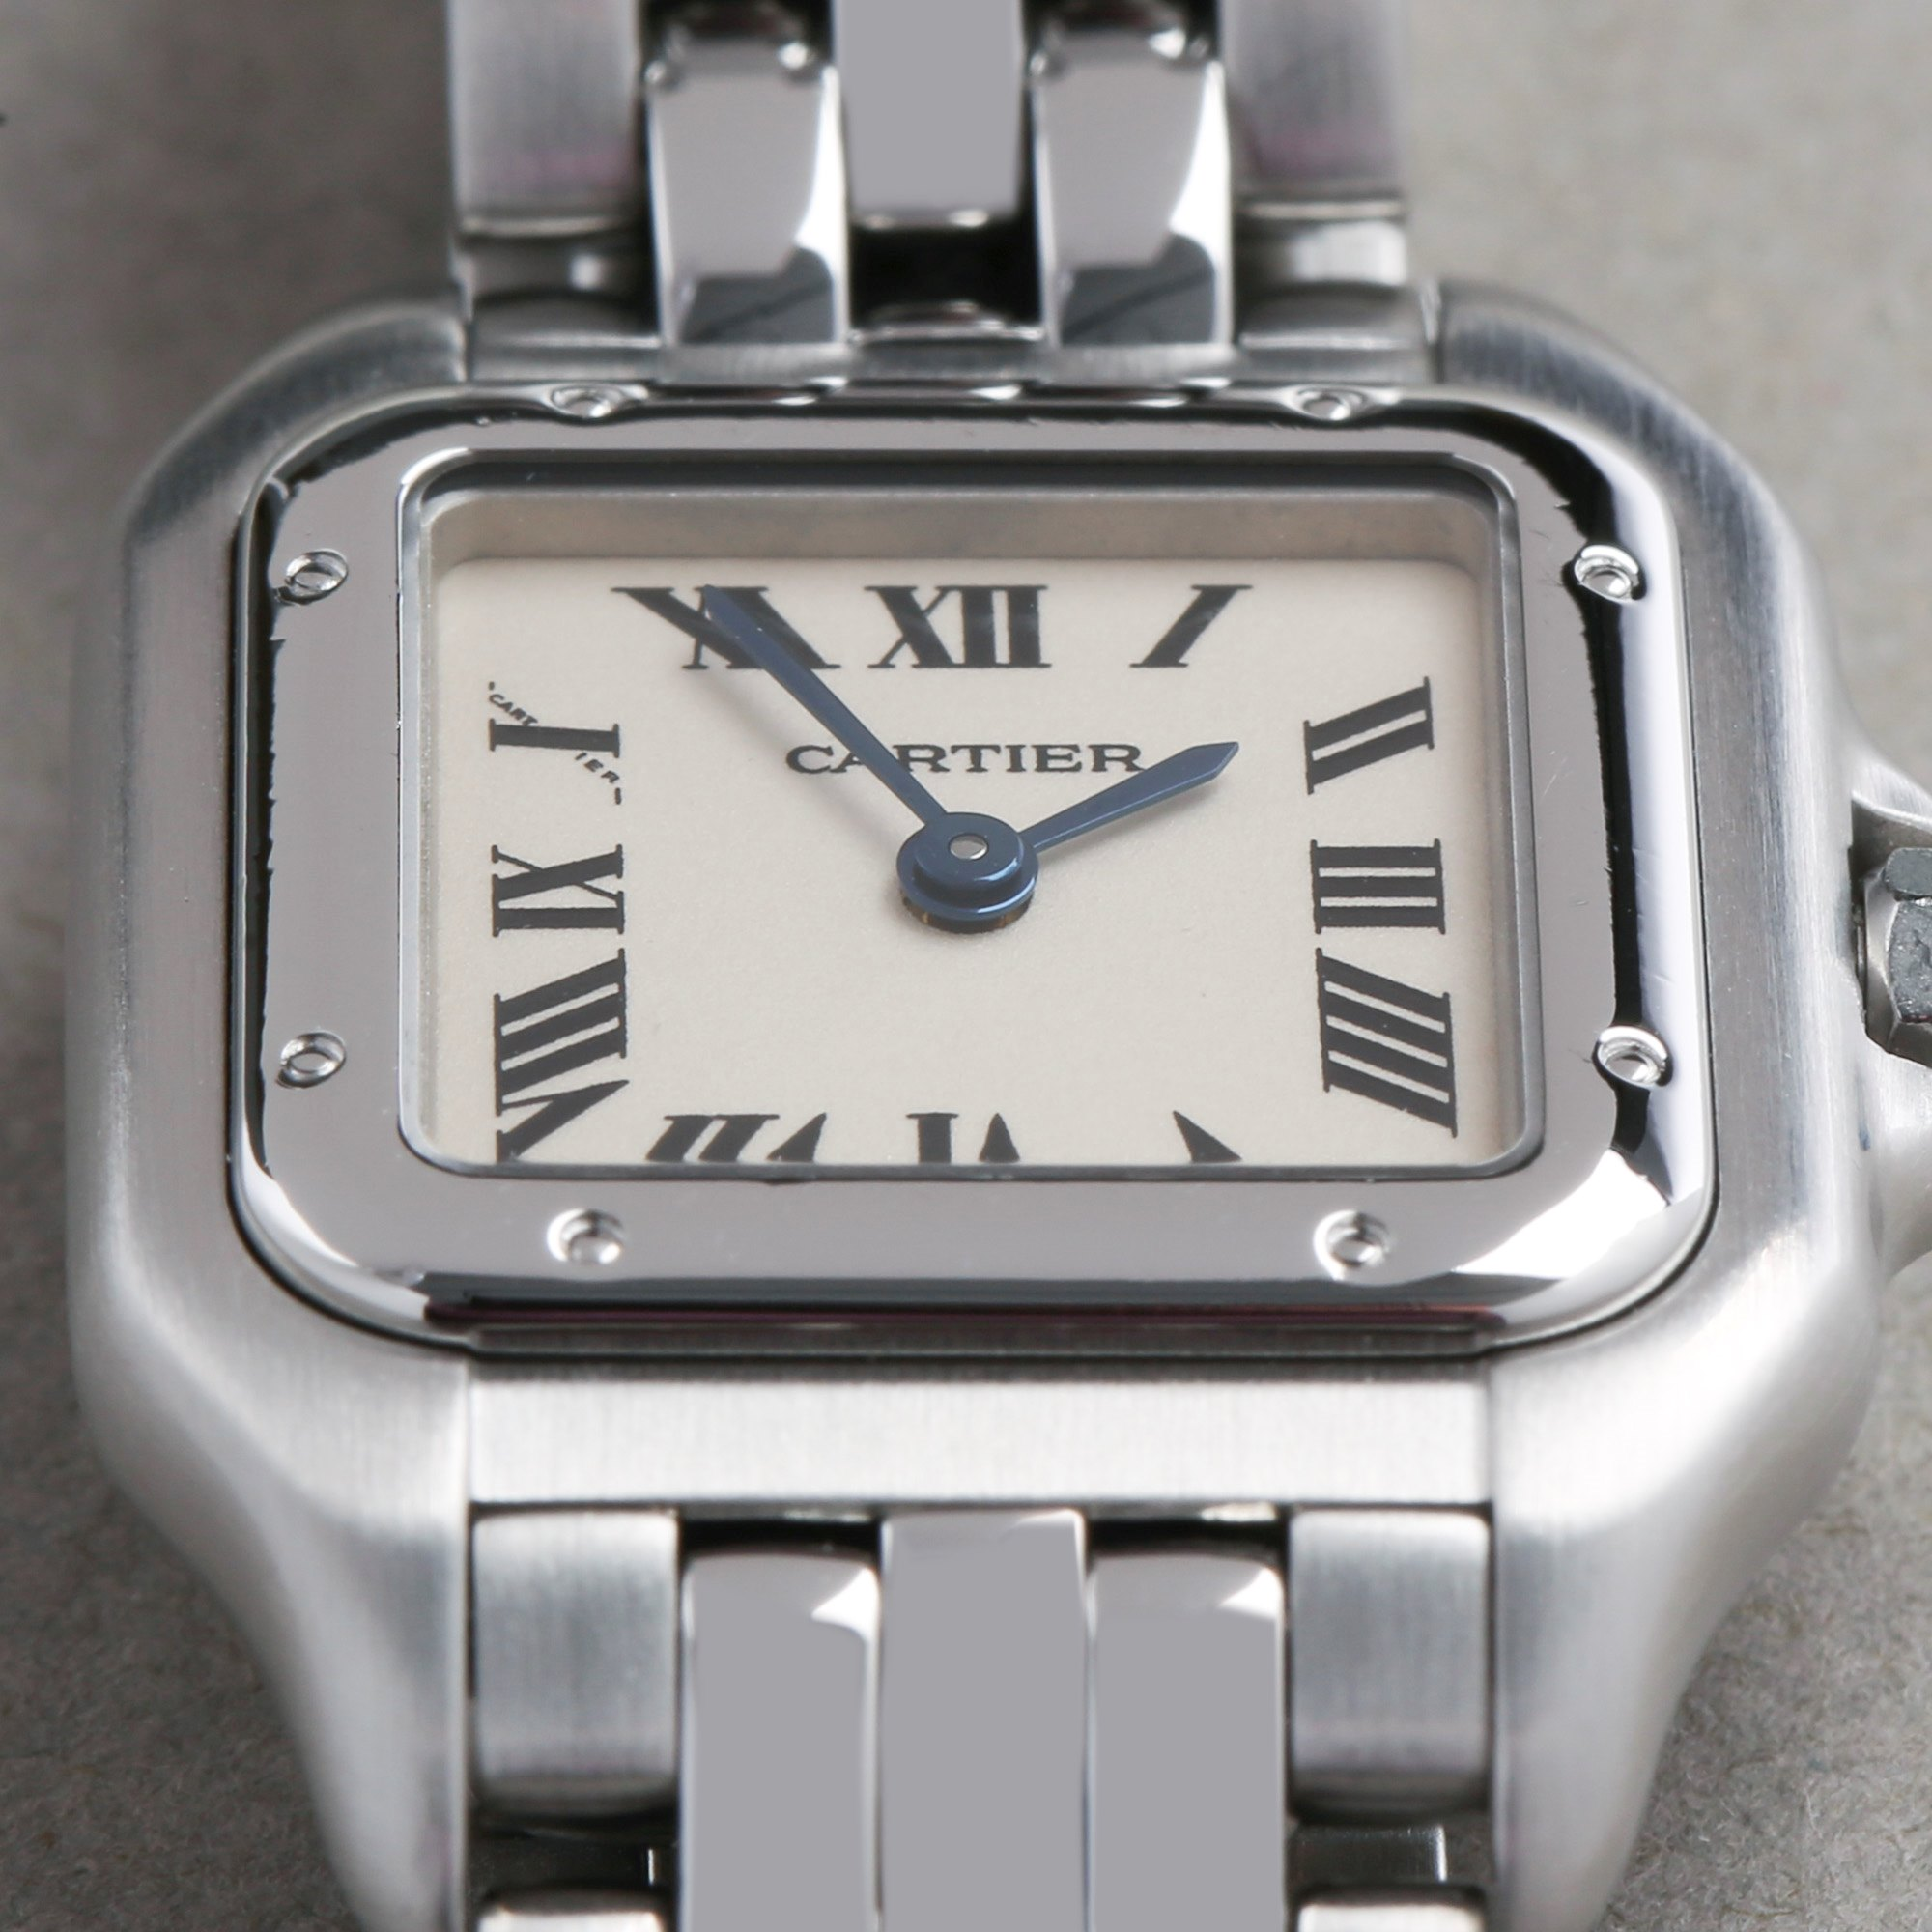 Cartier Panthère 1320 Ladies Stainless Steel Watch - Image 9 of 10